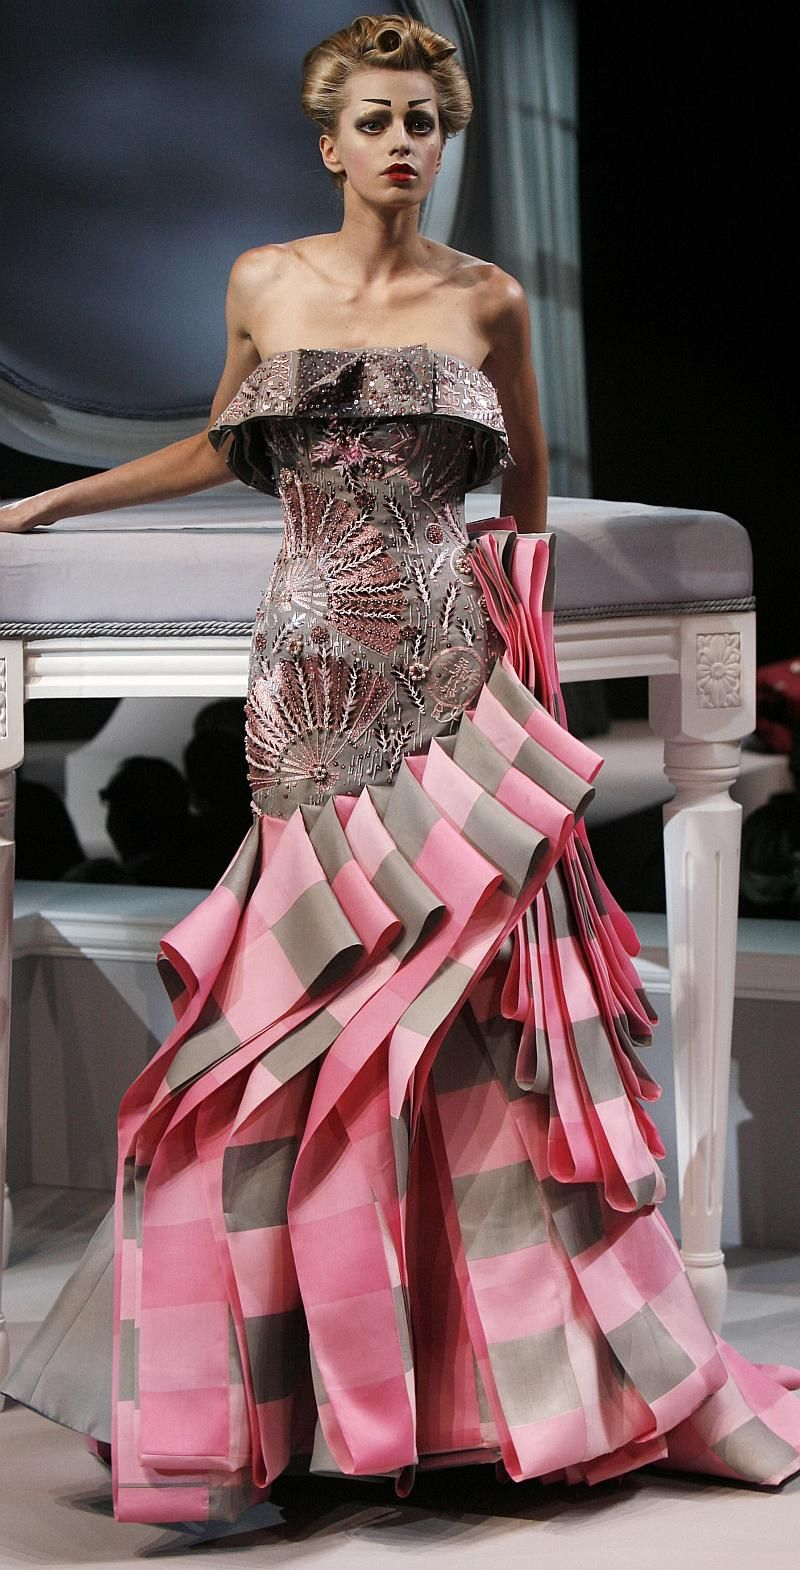 John Galliano for The House of Dior, Spring/Summer 2007